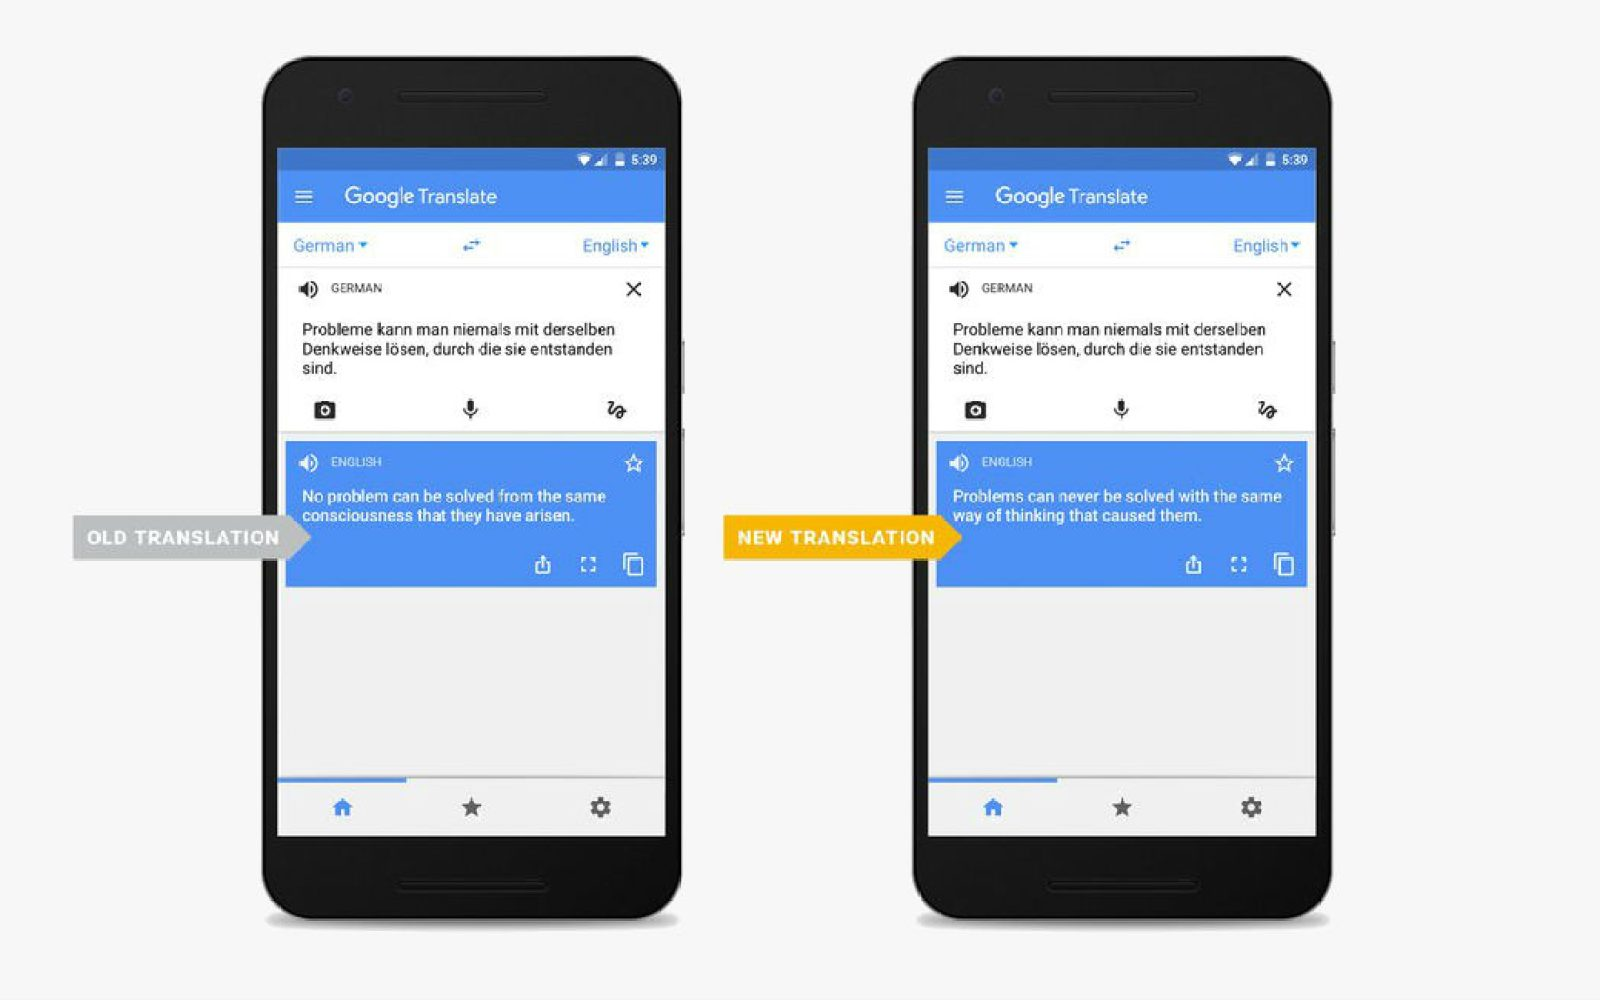 Google Translate rolling out neural machine translation improvements in more languages